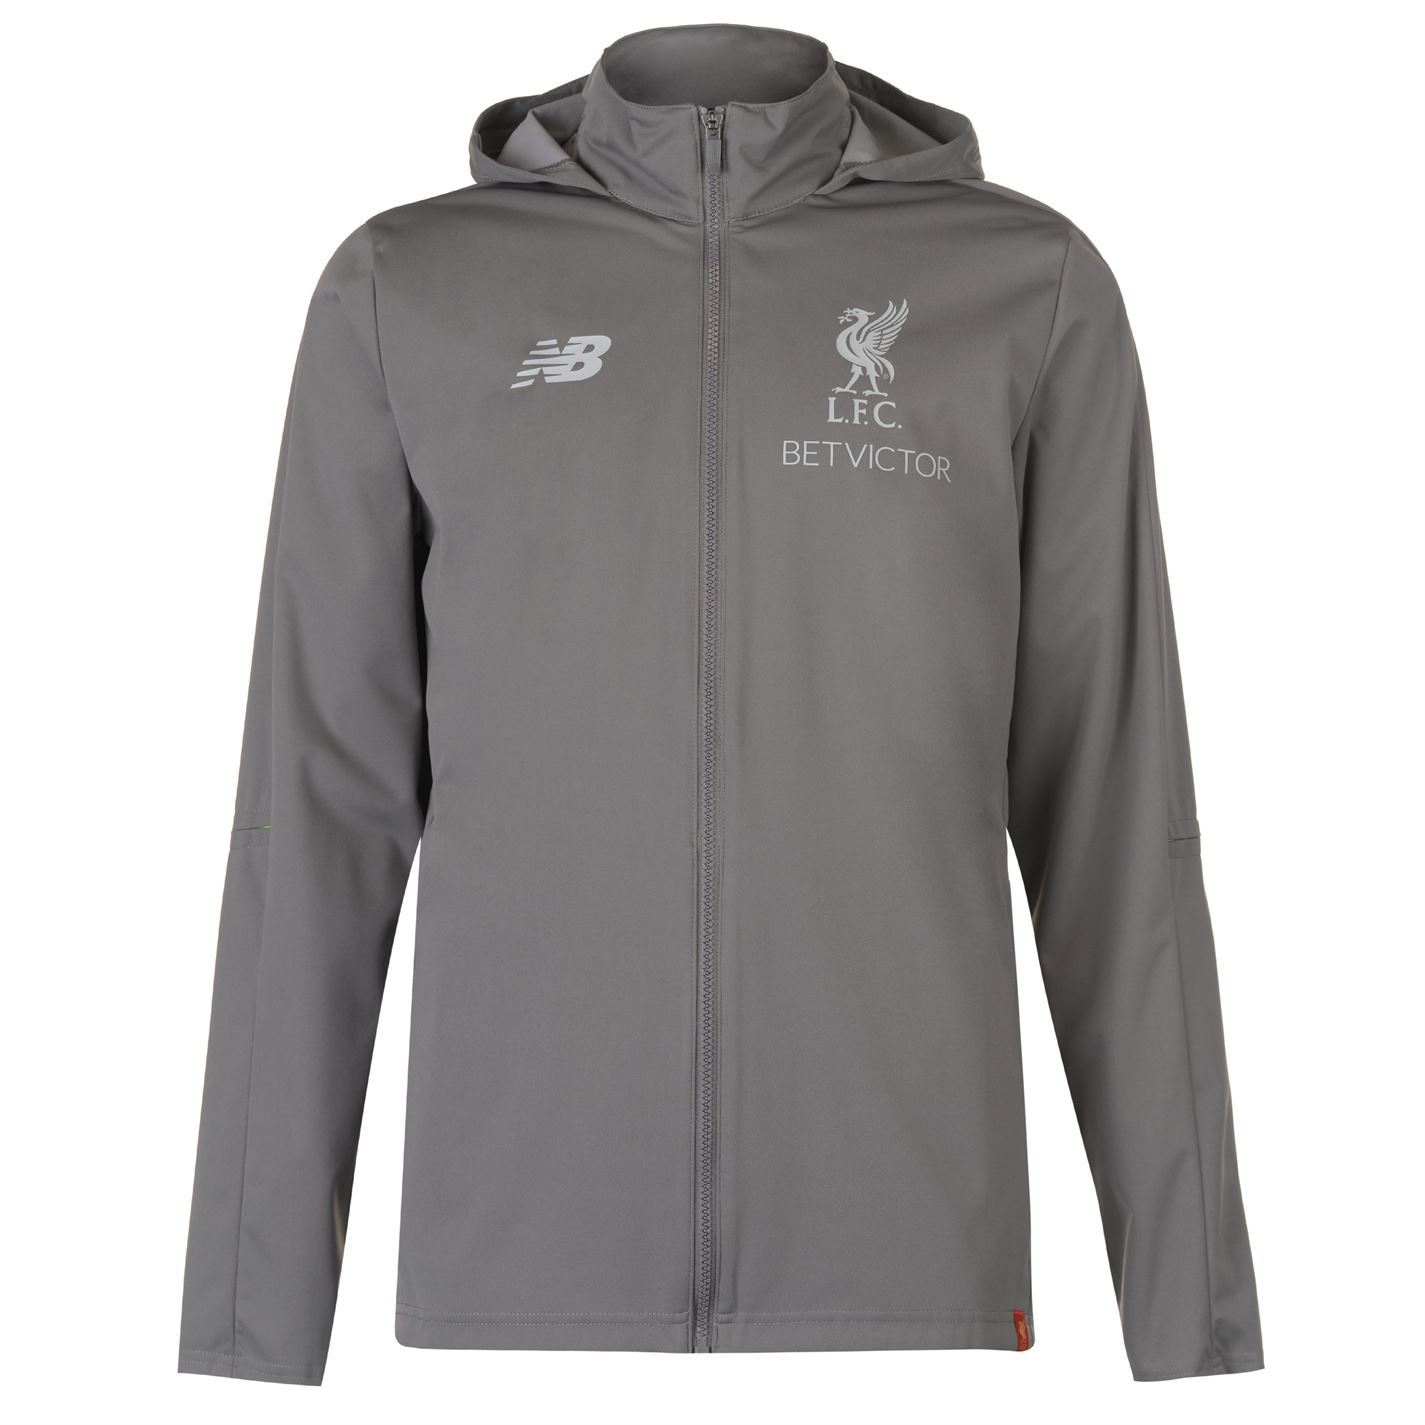 2aa9ea395cbb1 This Mens New Balance Liverpool Rain Jacket 2018 2019 will keep you going  even when the weather is not ideal thanks to the PU finish which ...